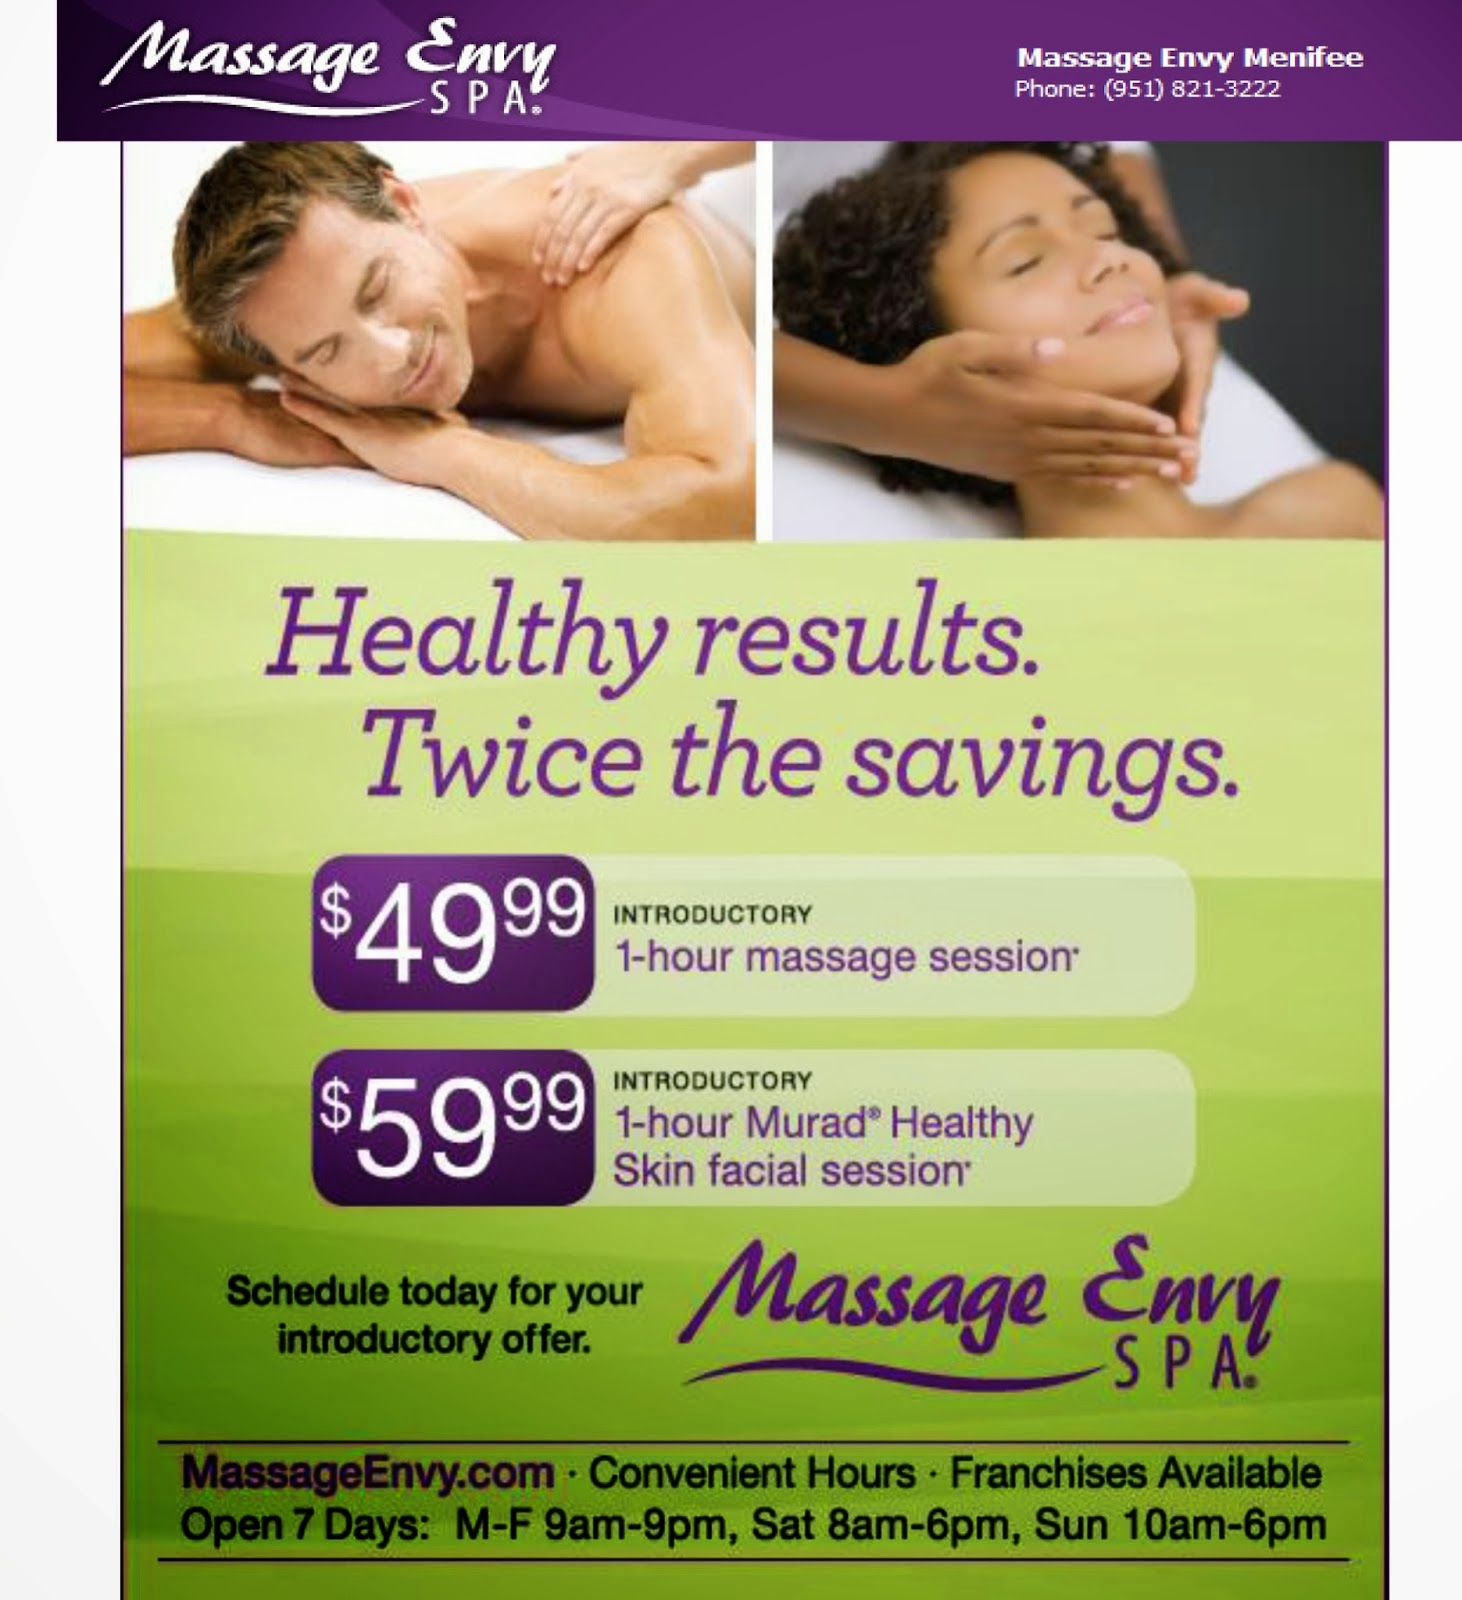 Massage envy $39 coupon